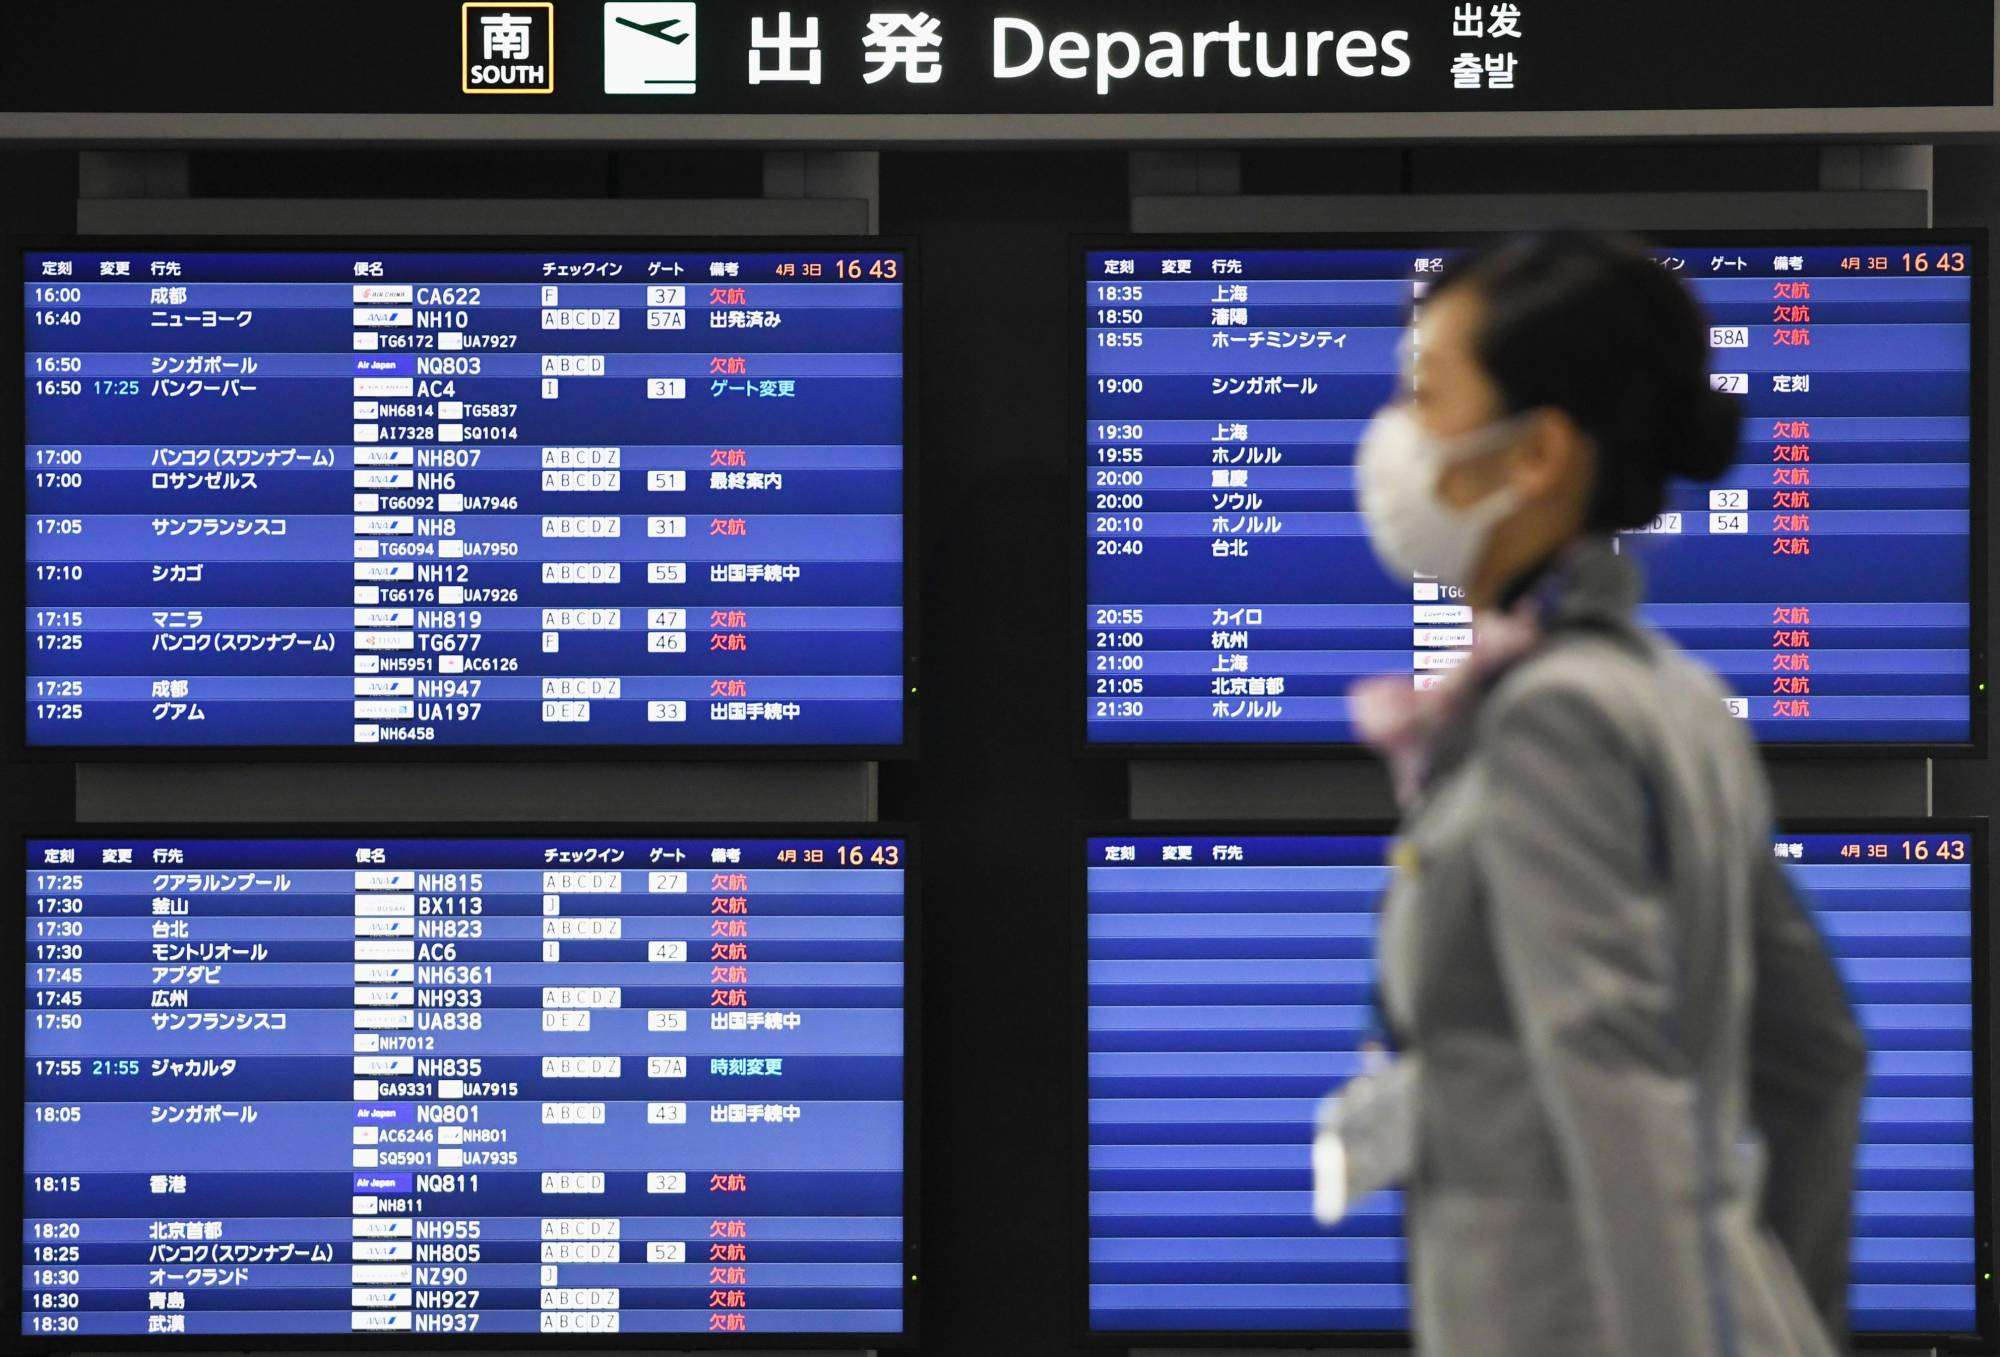 A departure board at Narita airport near Tokyo shows most flights canceled on April 3 amid the spread of the new coronavirus. | KYODO